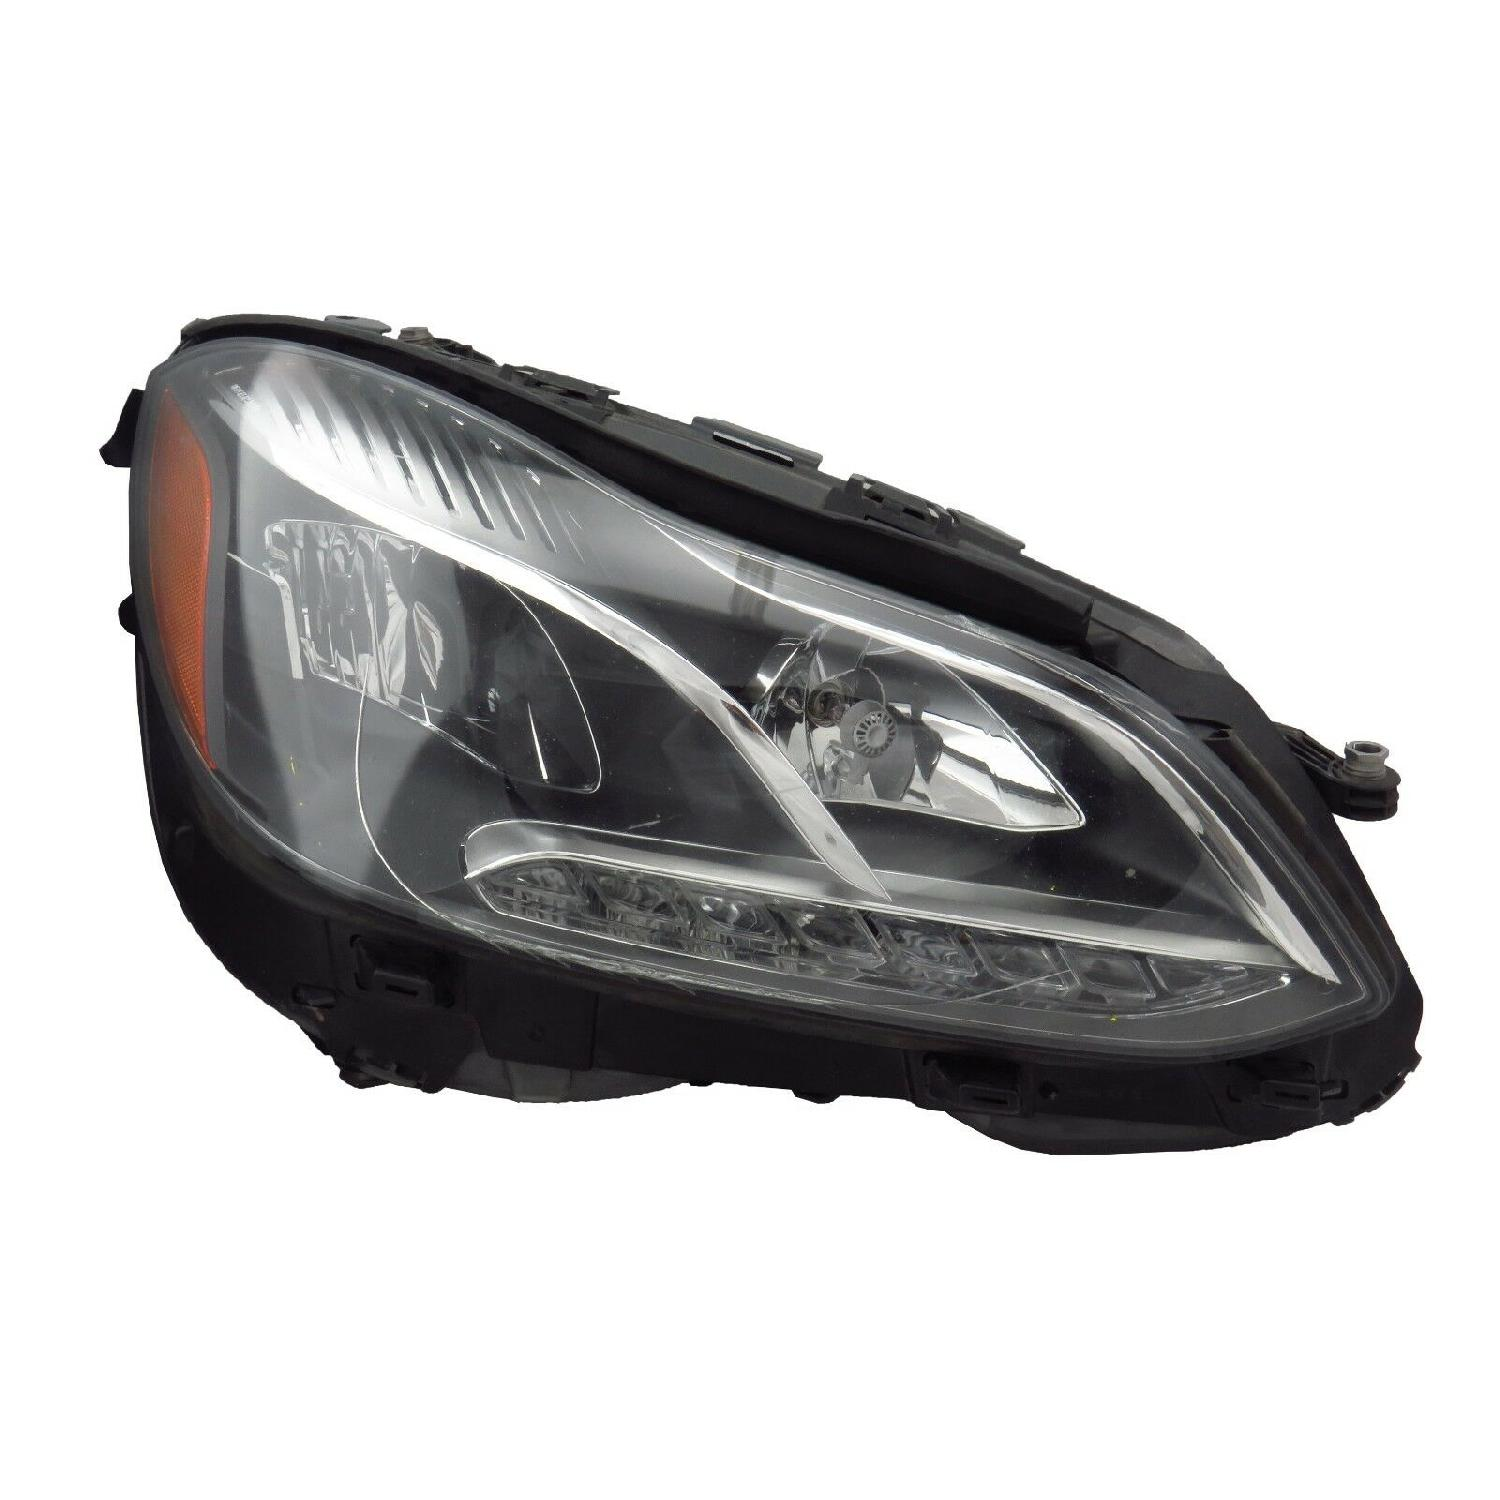 DEPO Headlight -  Mercedes Benz 2013-2014 GLK250, 2013-2014 GLK350